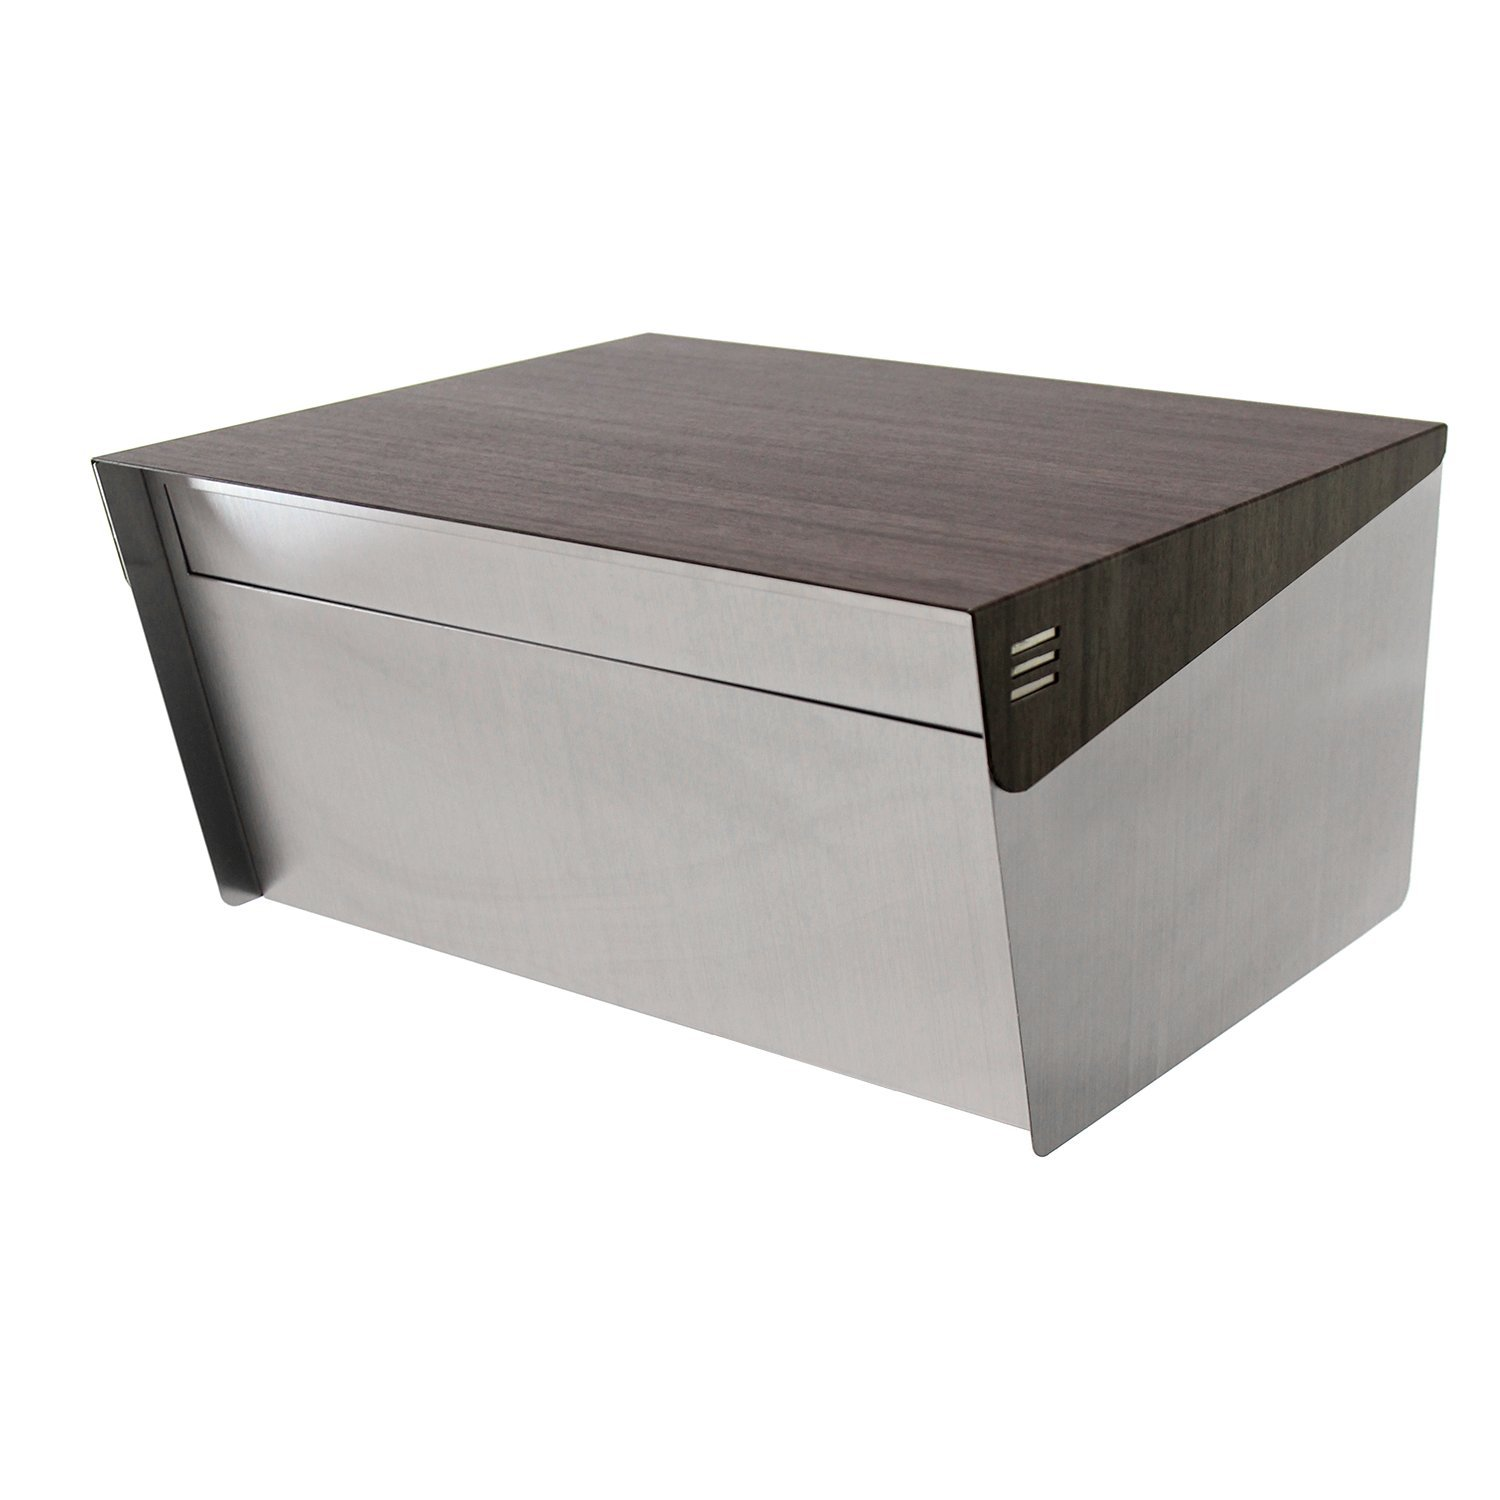 """KATANABOX Wide DR - Stainless Steel Post Mount Modern Design Mailbox with Lock and Key Extra Large Letterbox Rust Proof for Modern Home House Apartment Rural Roadside 12"""" x 15"""" x 8"""" (Ebony Wood)"""